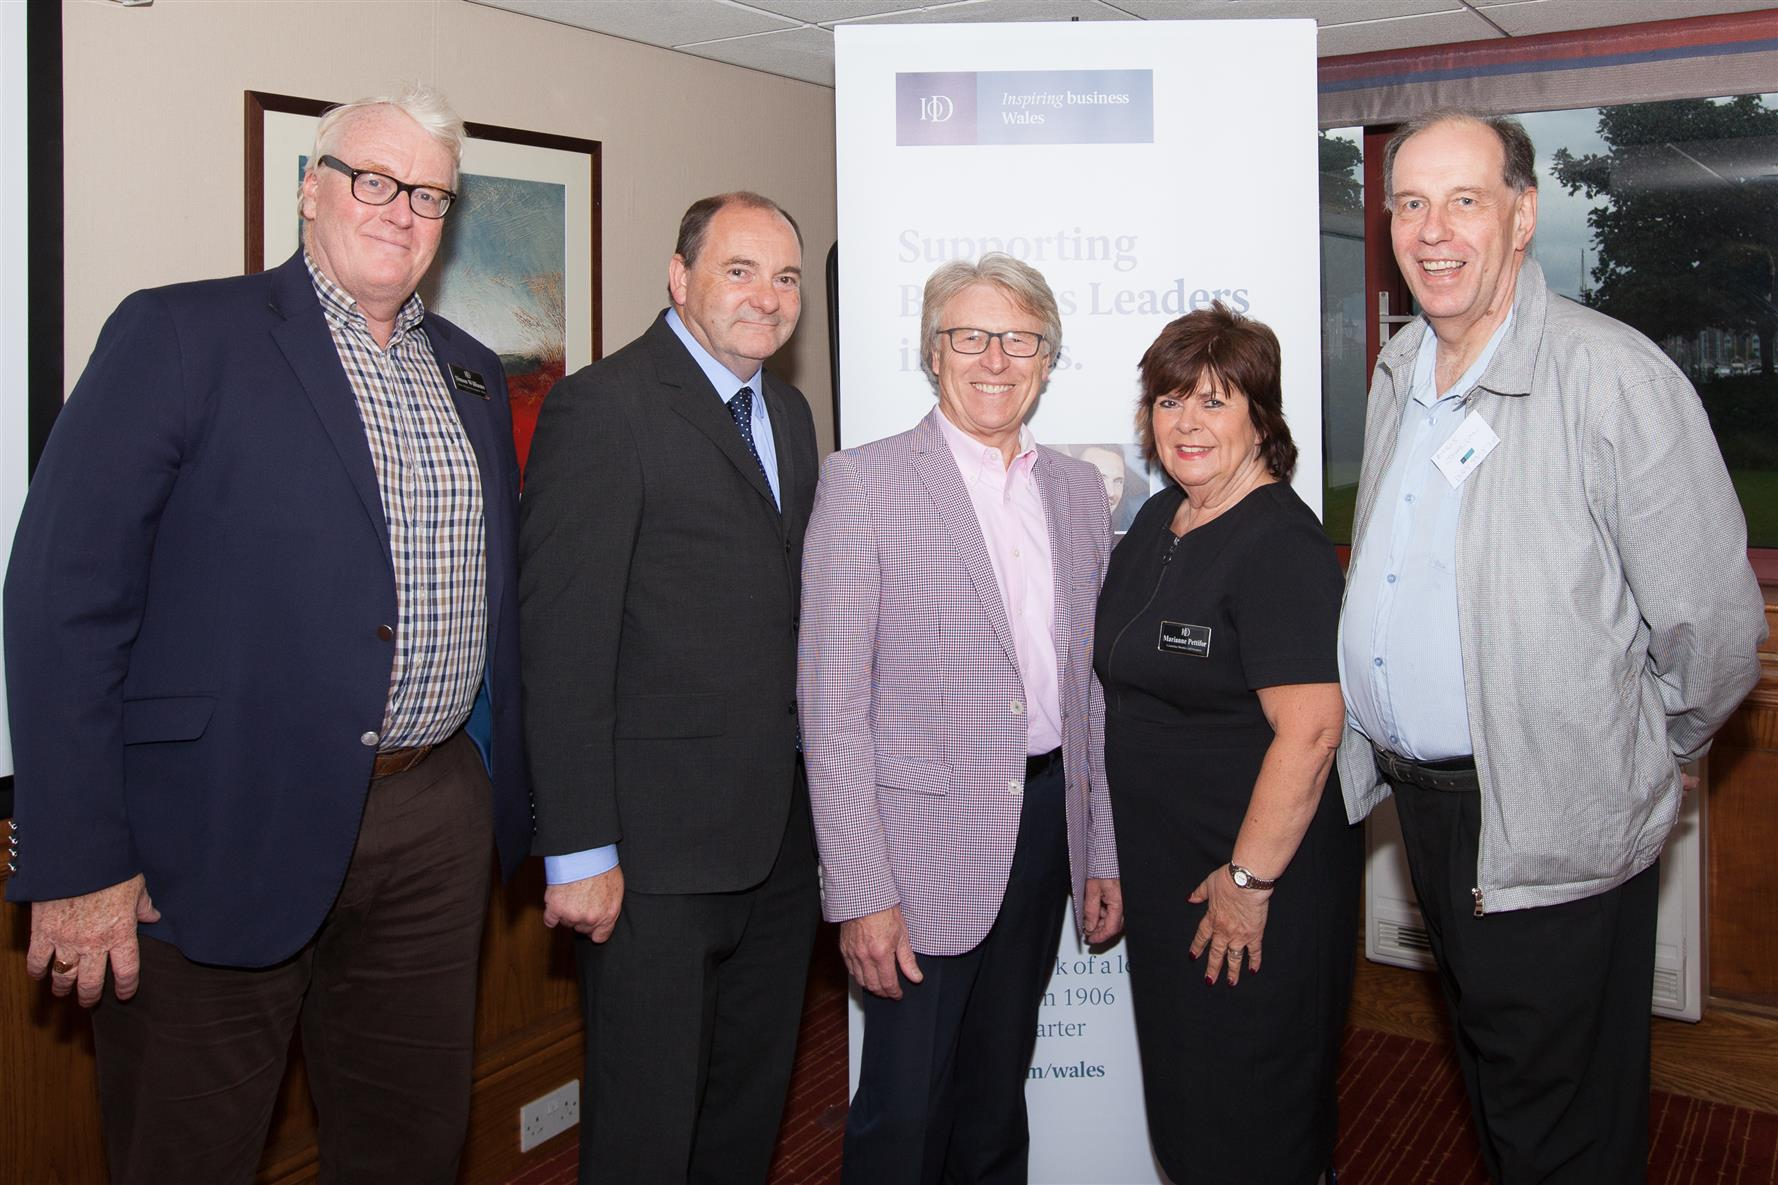 IOD networking event June 2017